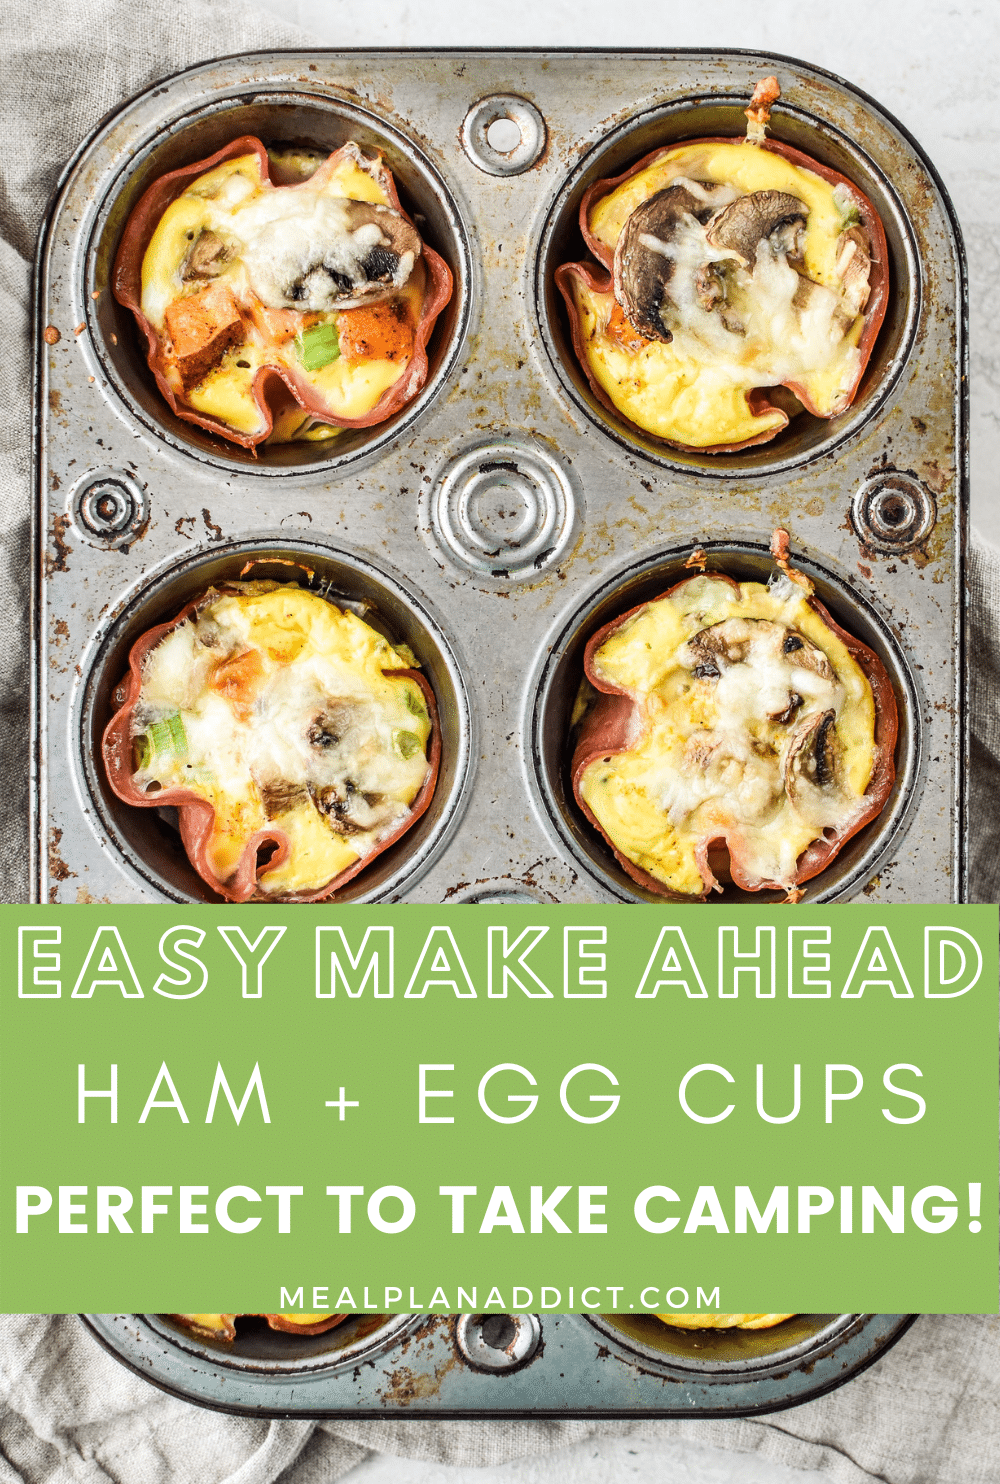 Easy Make Ahead Ham and Egg Cups Perfect to Take Camping